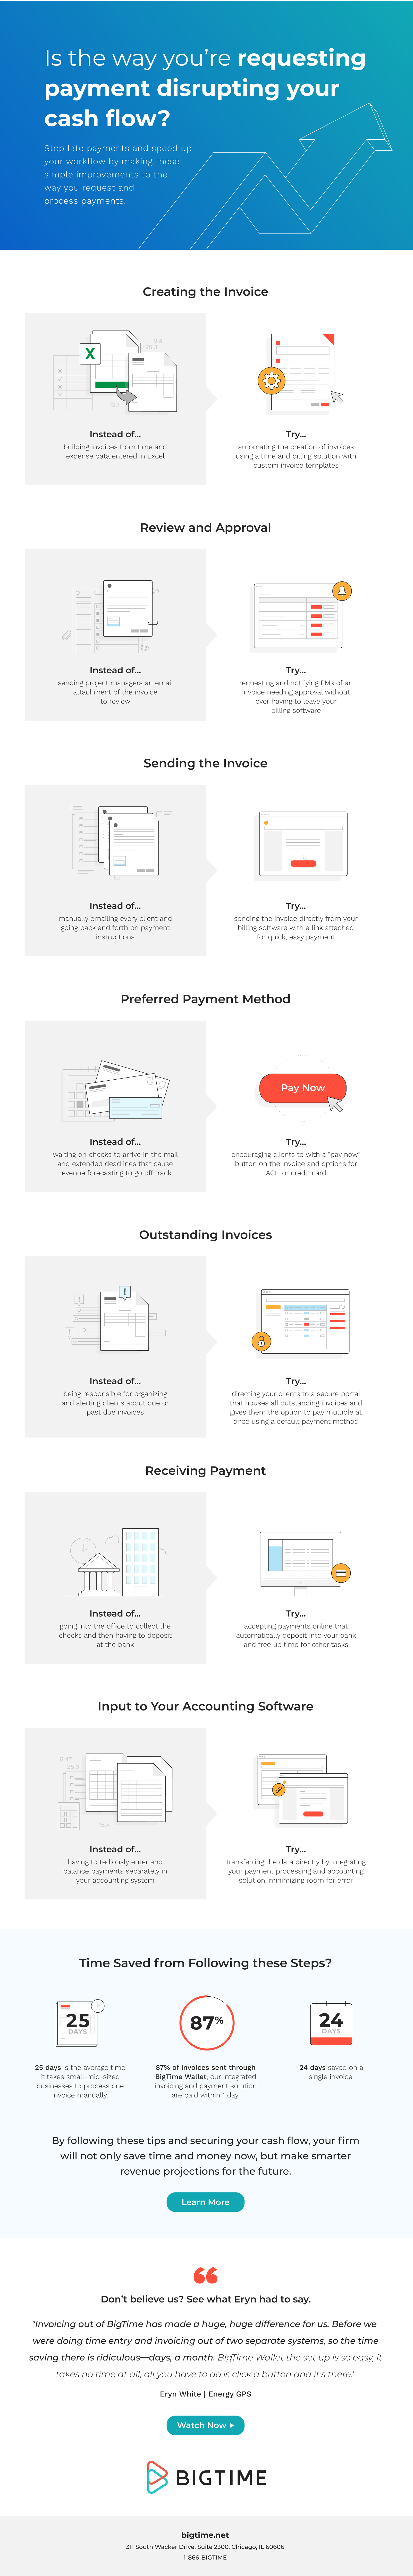 BigTime Wallet_infographic